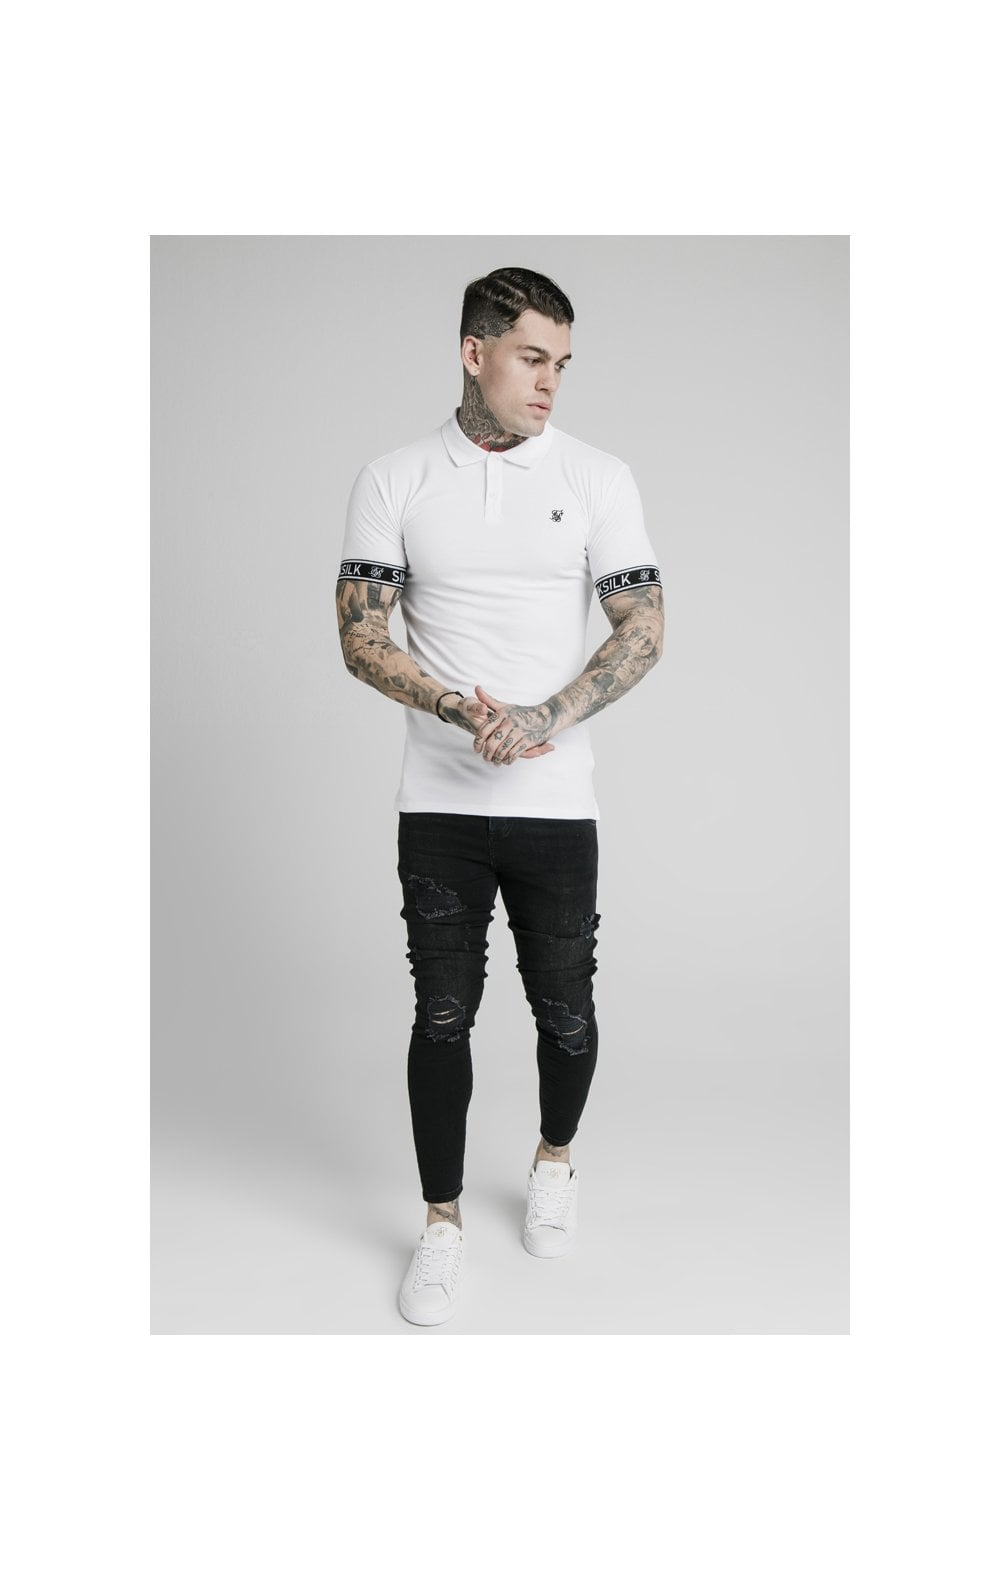 SikSilk S/S Tech Polo Tee - White (4)